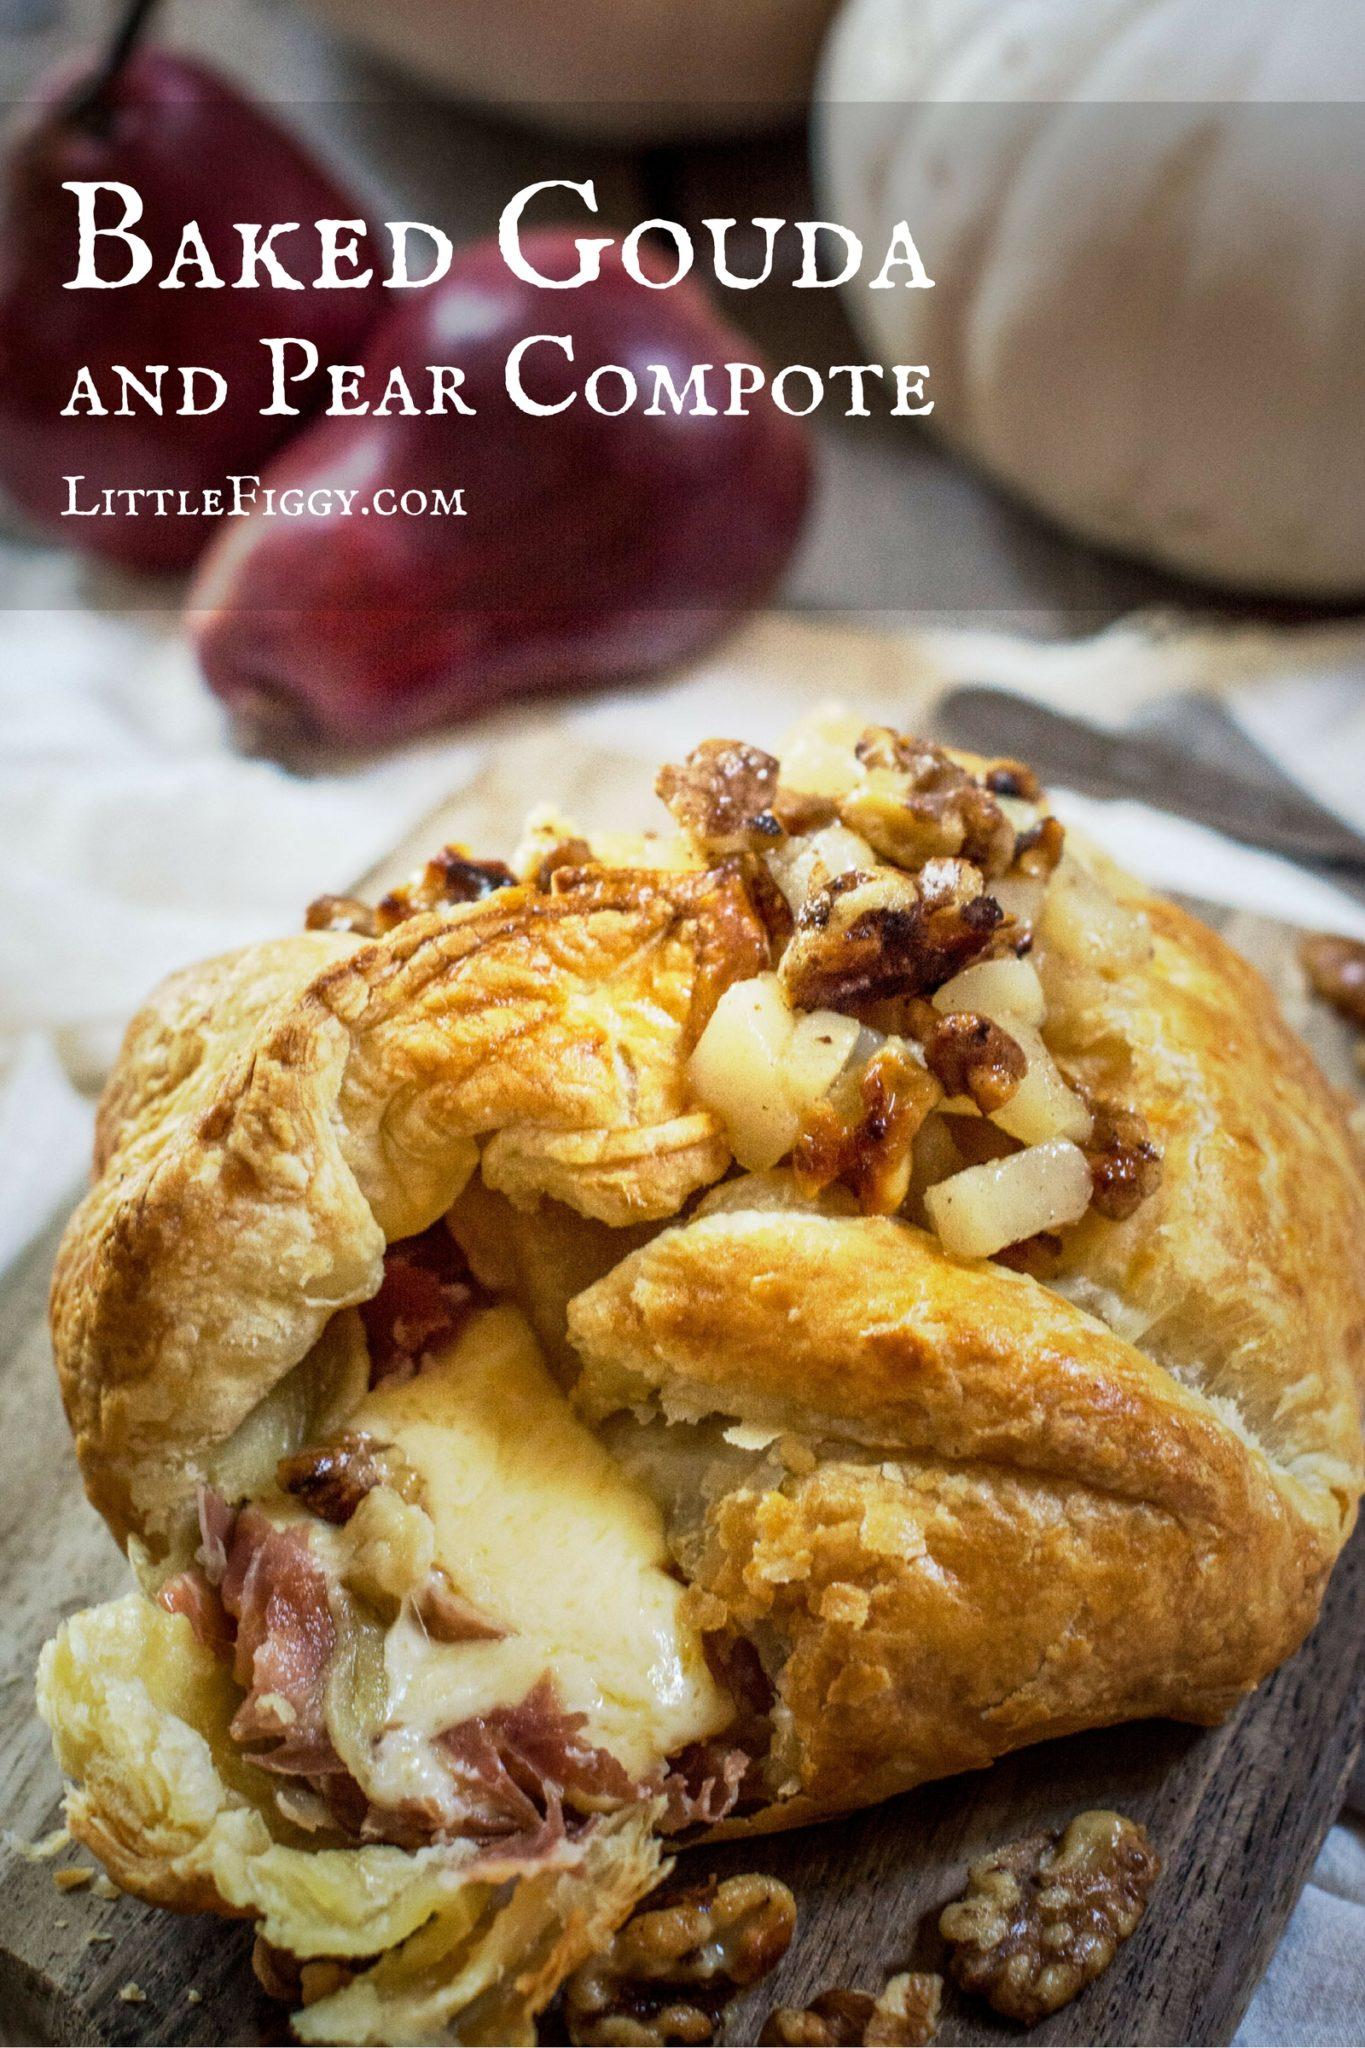 Baked Gouda and a warm Pear and Walnut Compote